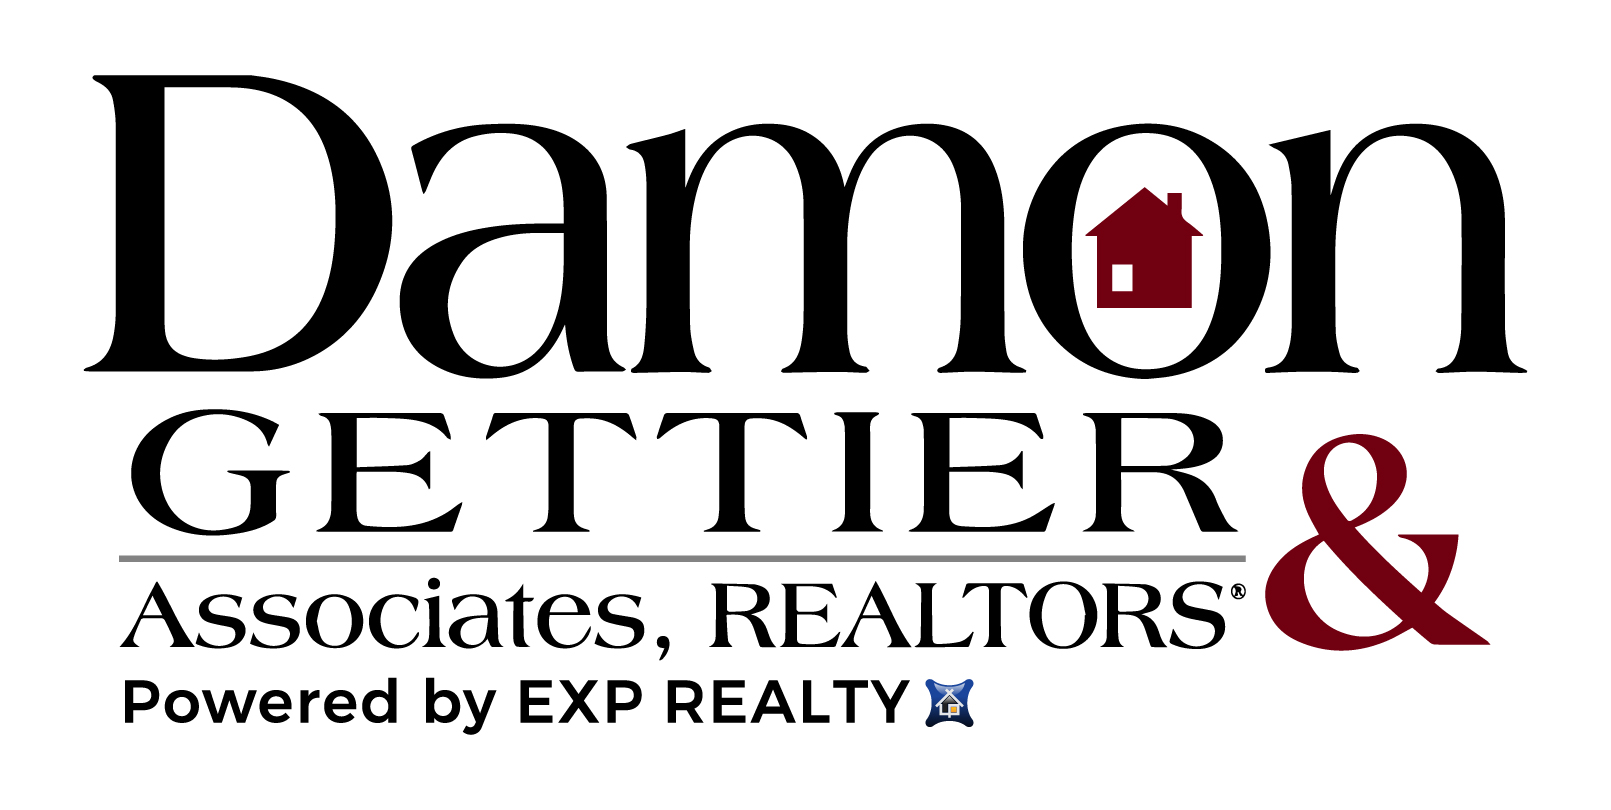 Damon Gettier & Associates, REALTORS logo